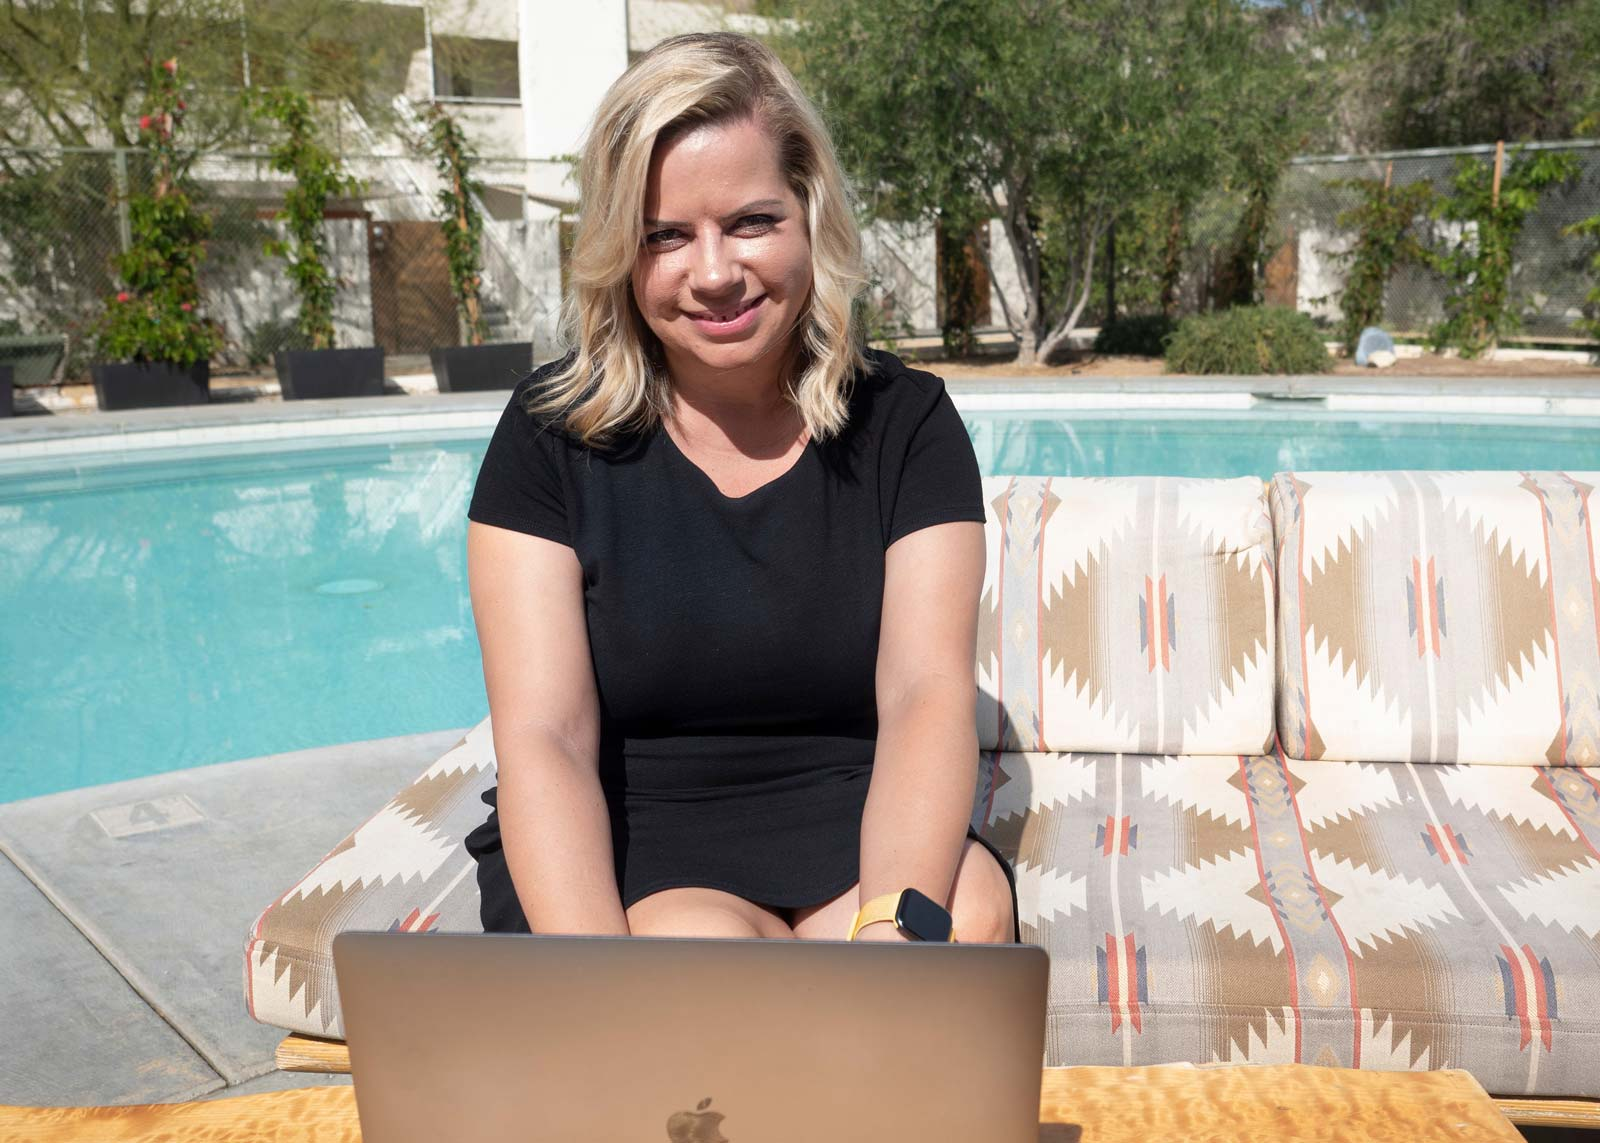 Lisa Burford working on a laptop while sitting by a pool in Palm Springs, California